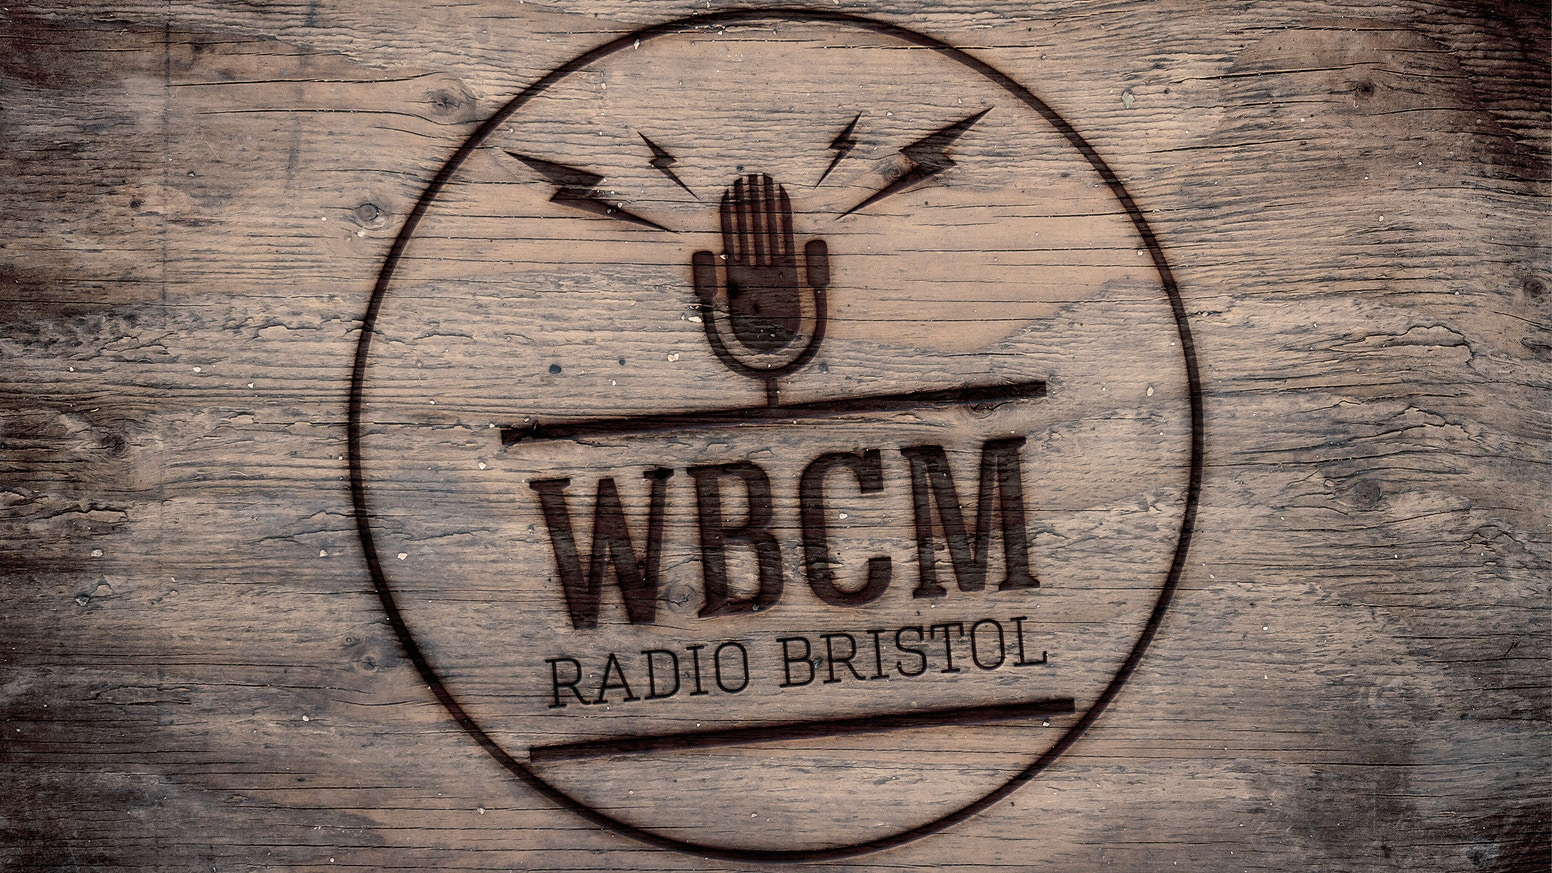 American roots music and radio programming, streaming live from the Birthplace of Country Music for a worldwide audience.